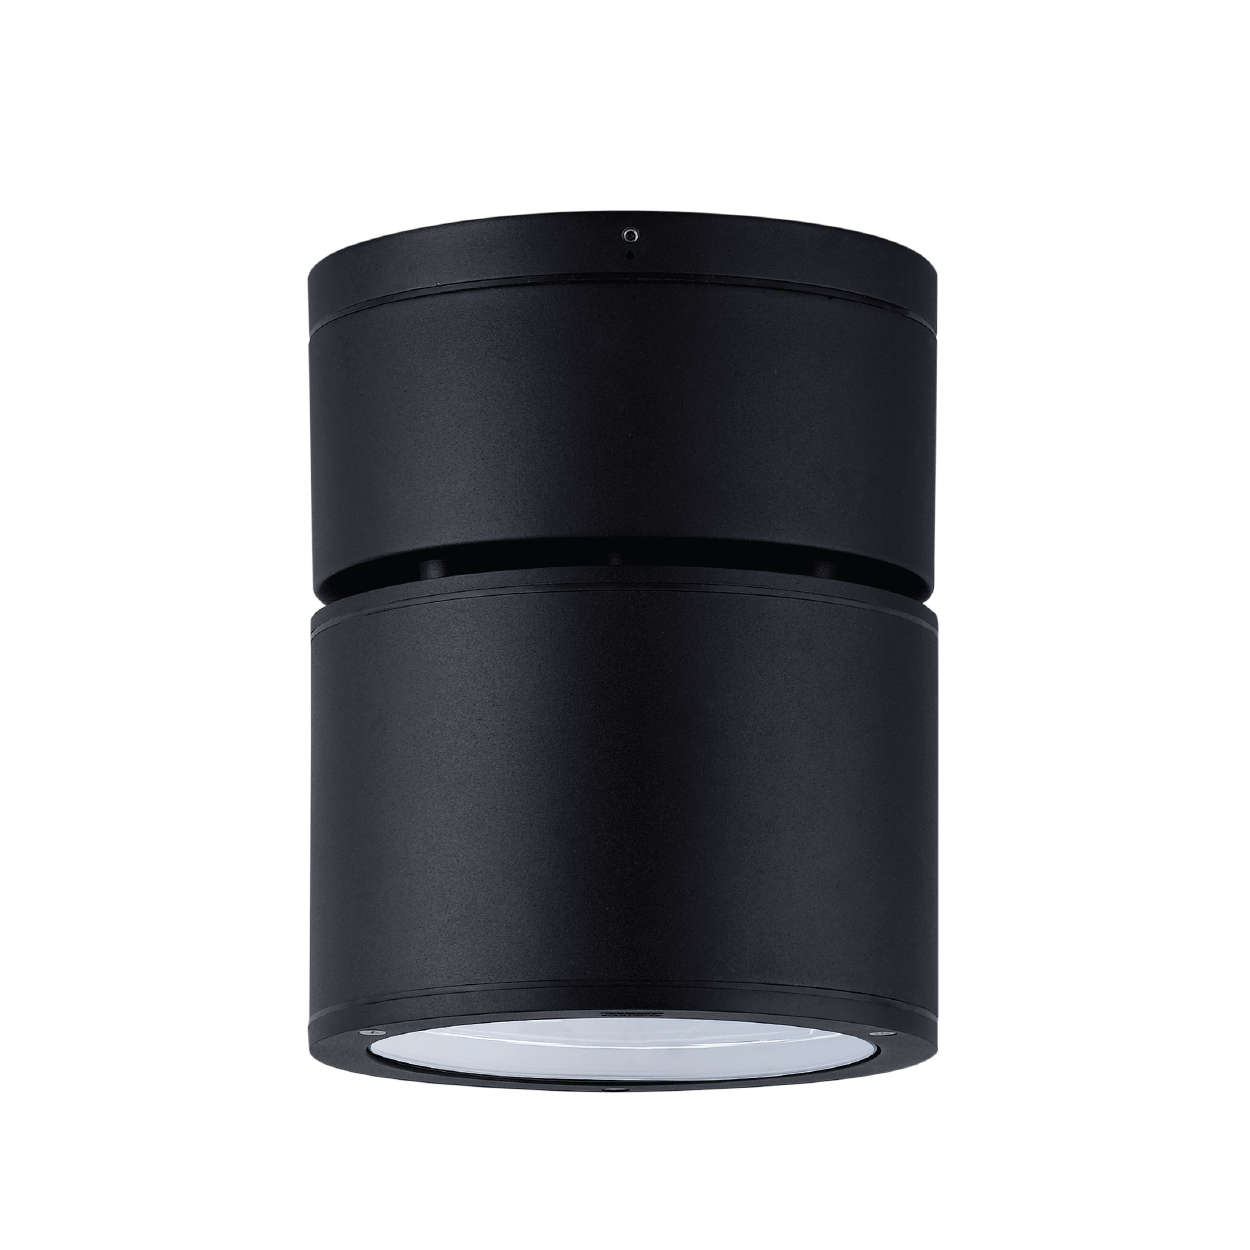 Ali Ceiling Downlight 885 Diameter LED Options Available